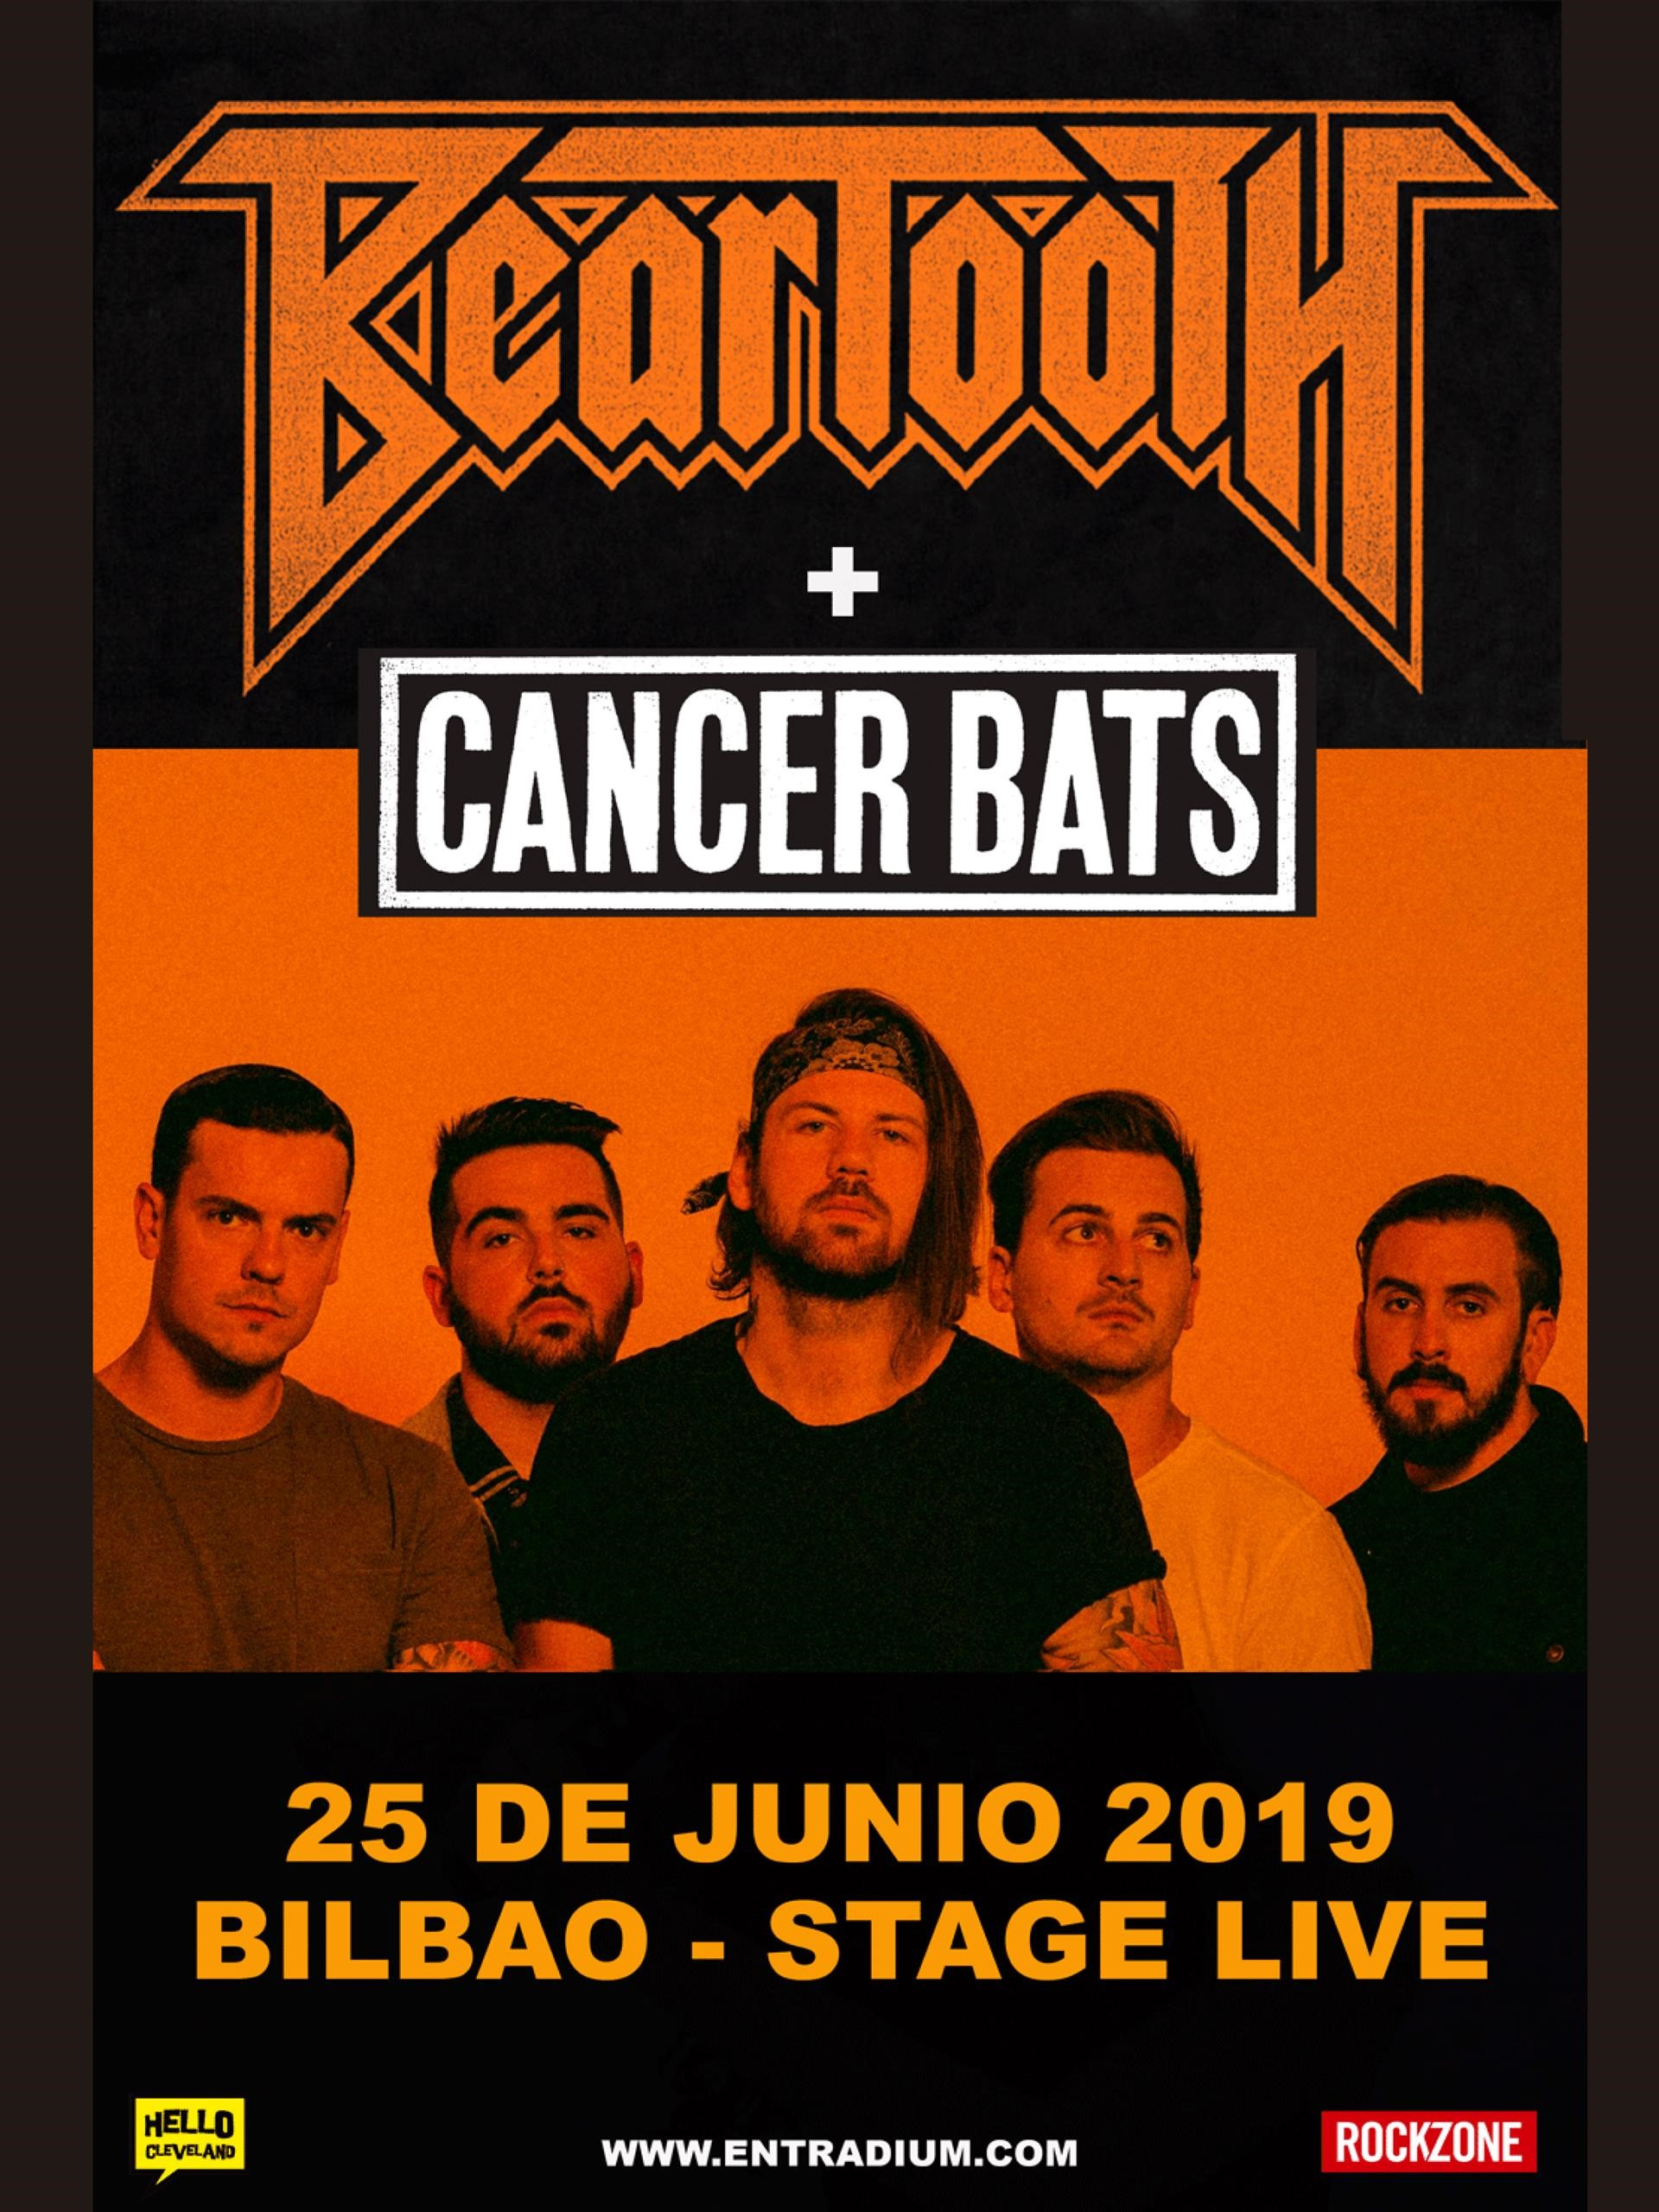 Beartooth + Cancer Bats